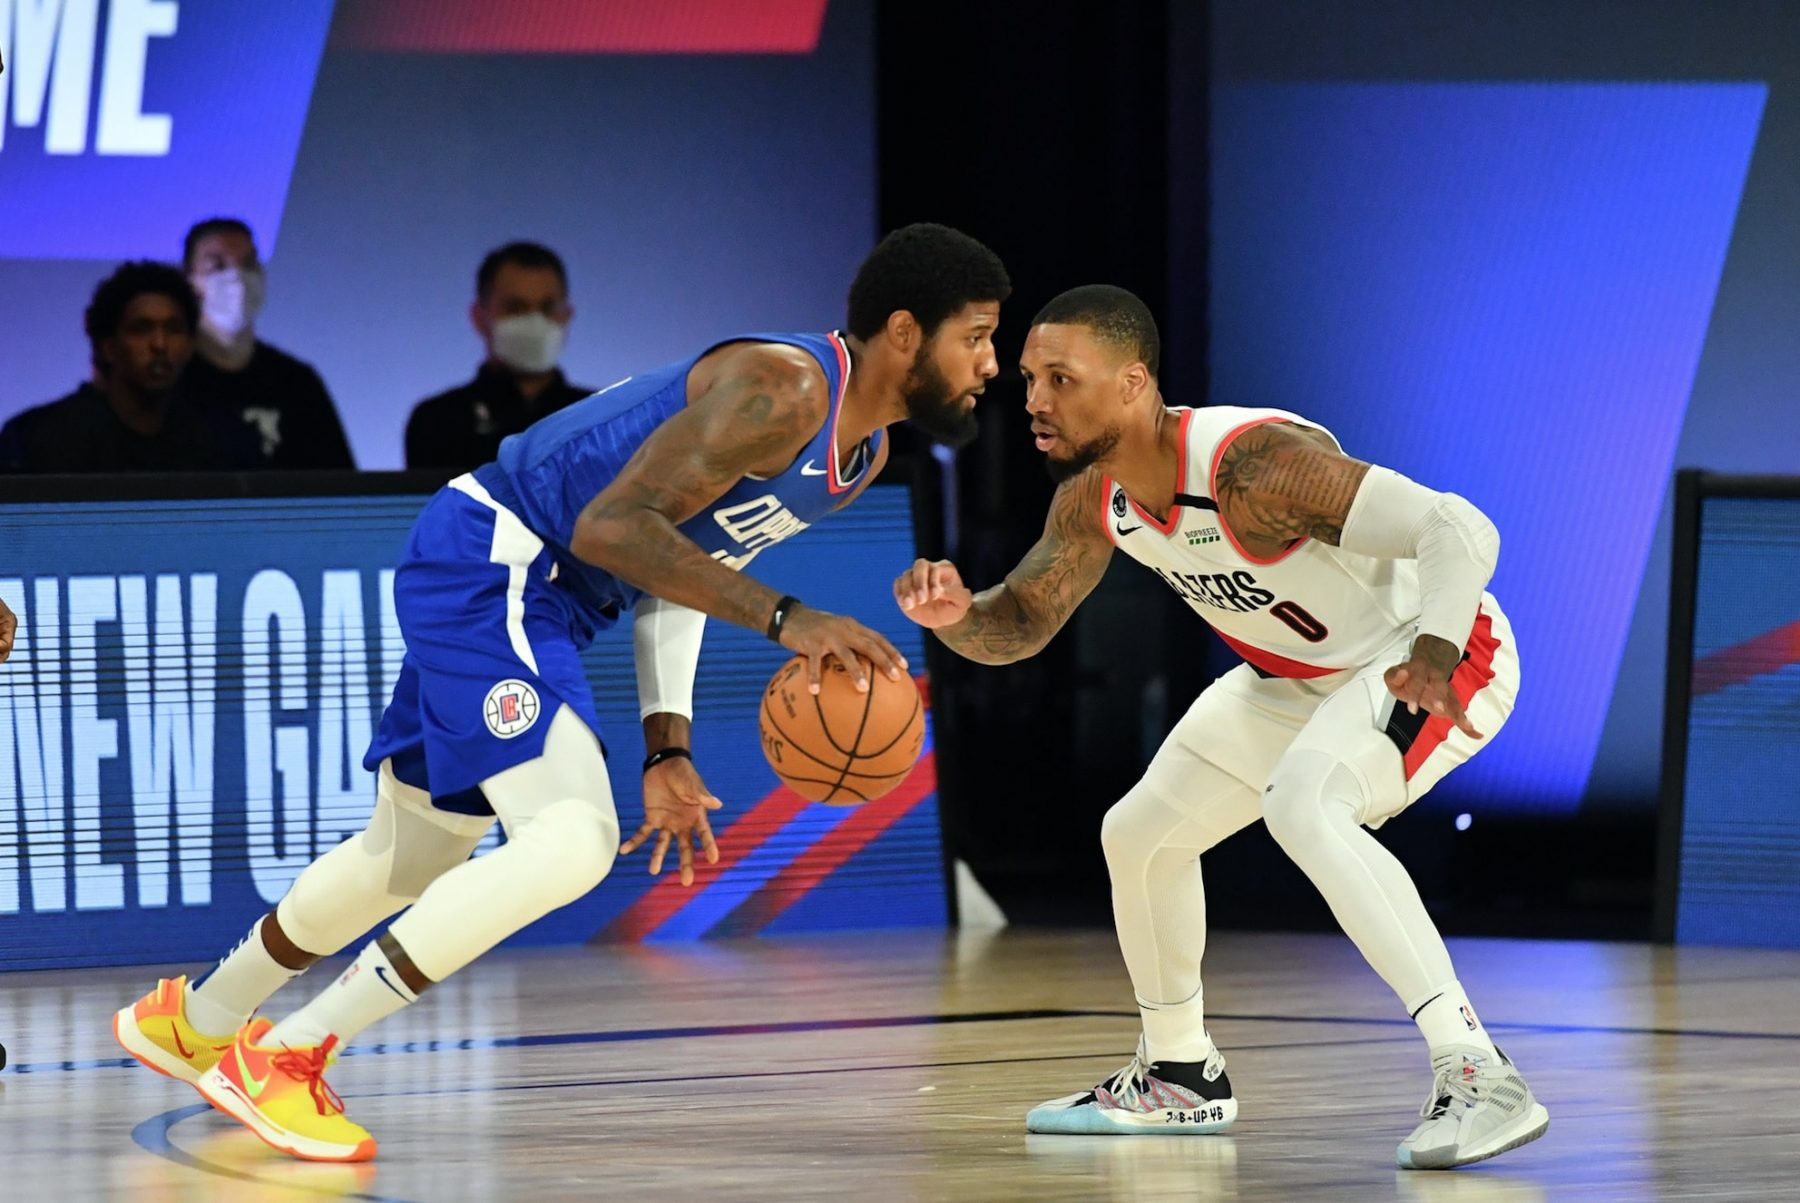 Paul George and Damian Lillard